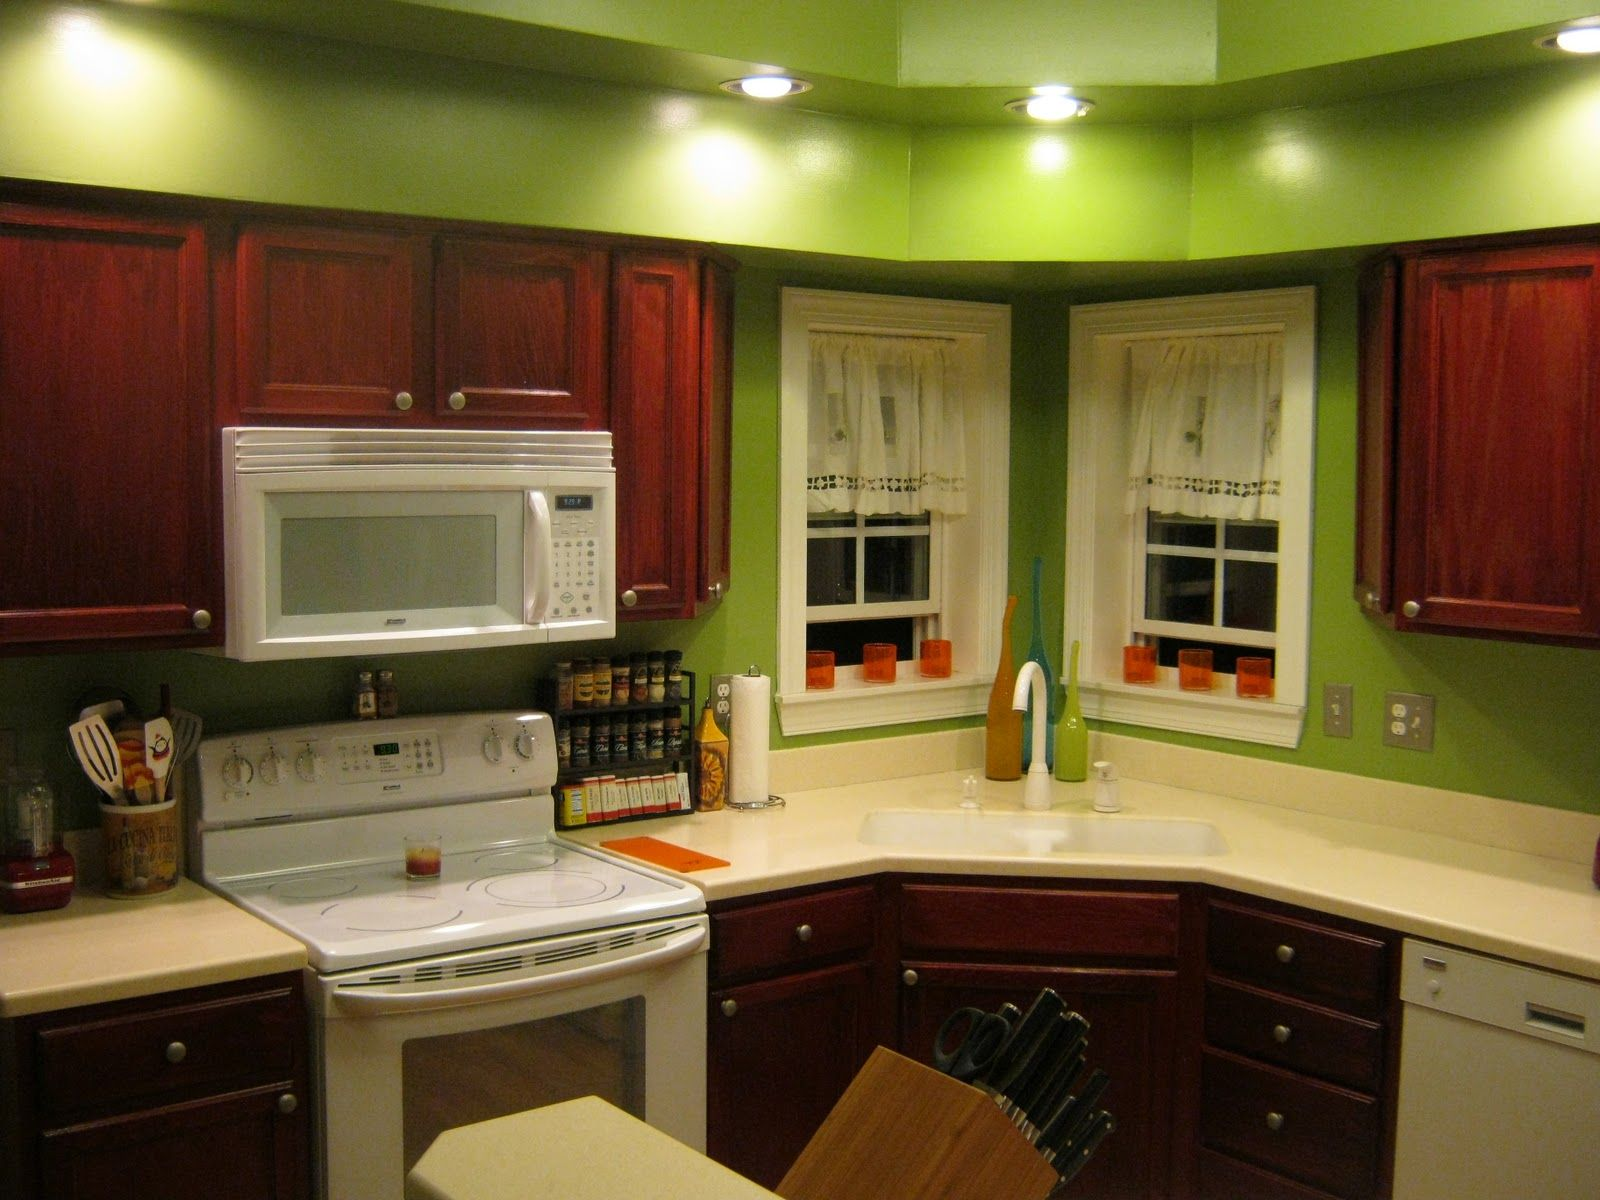 Most Popular Kitchen Wall Color Ideas - http://www.1stkitchenideas.com